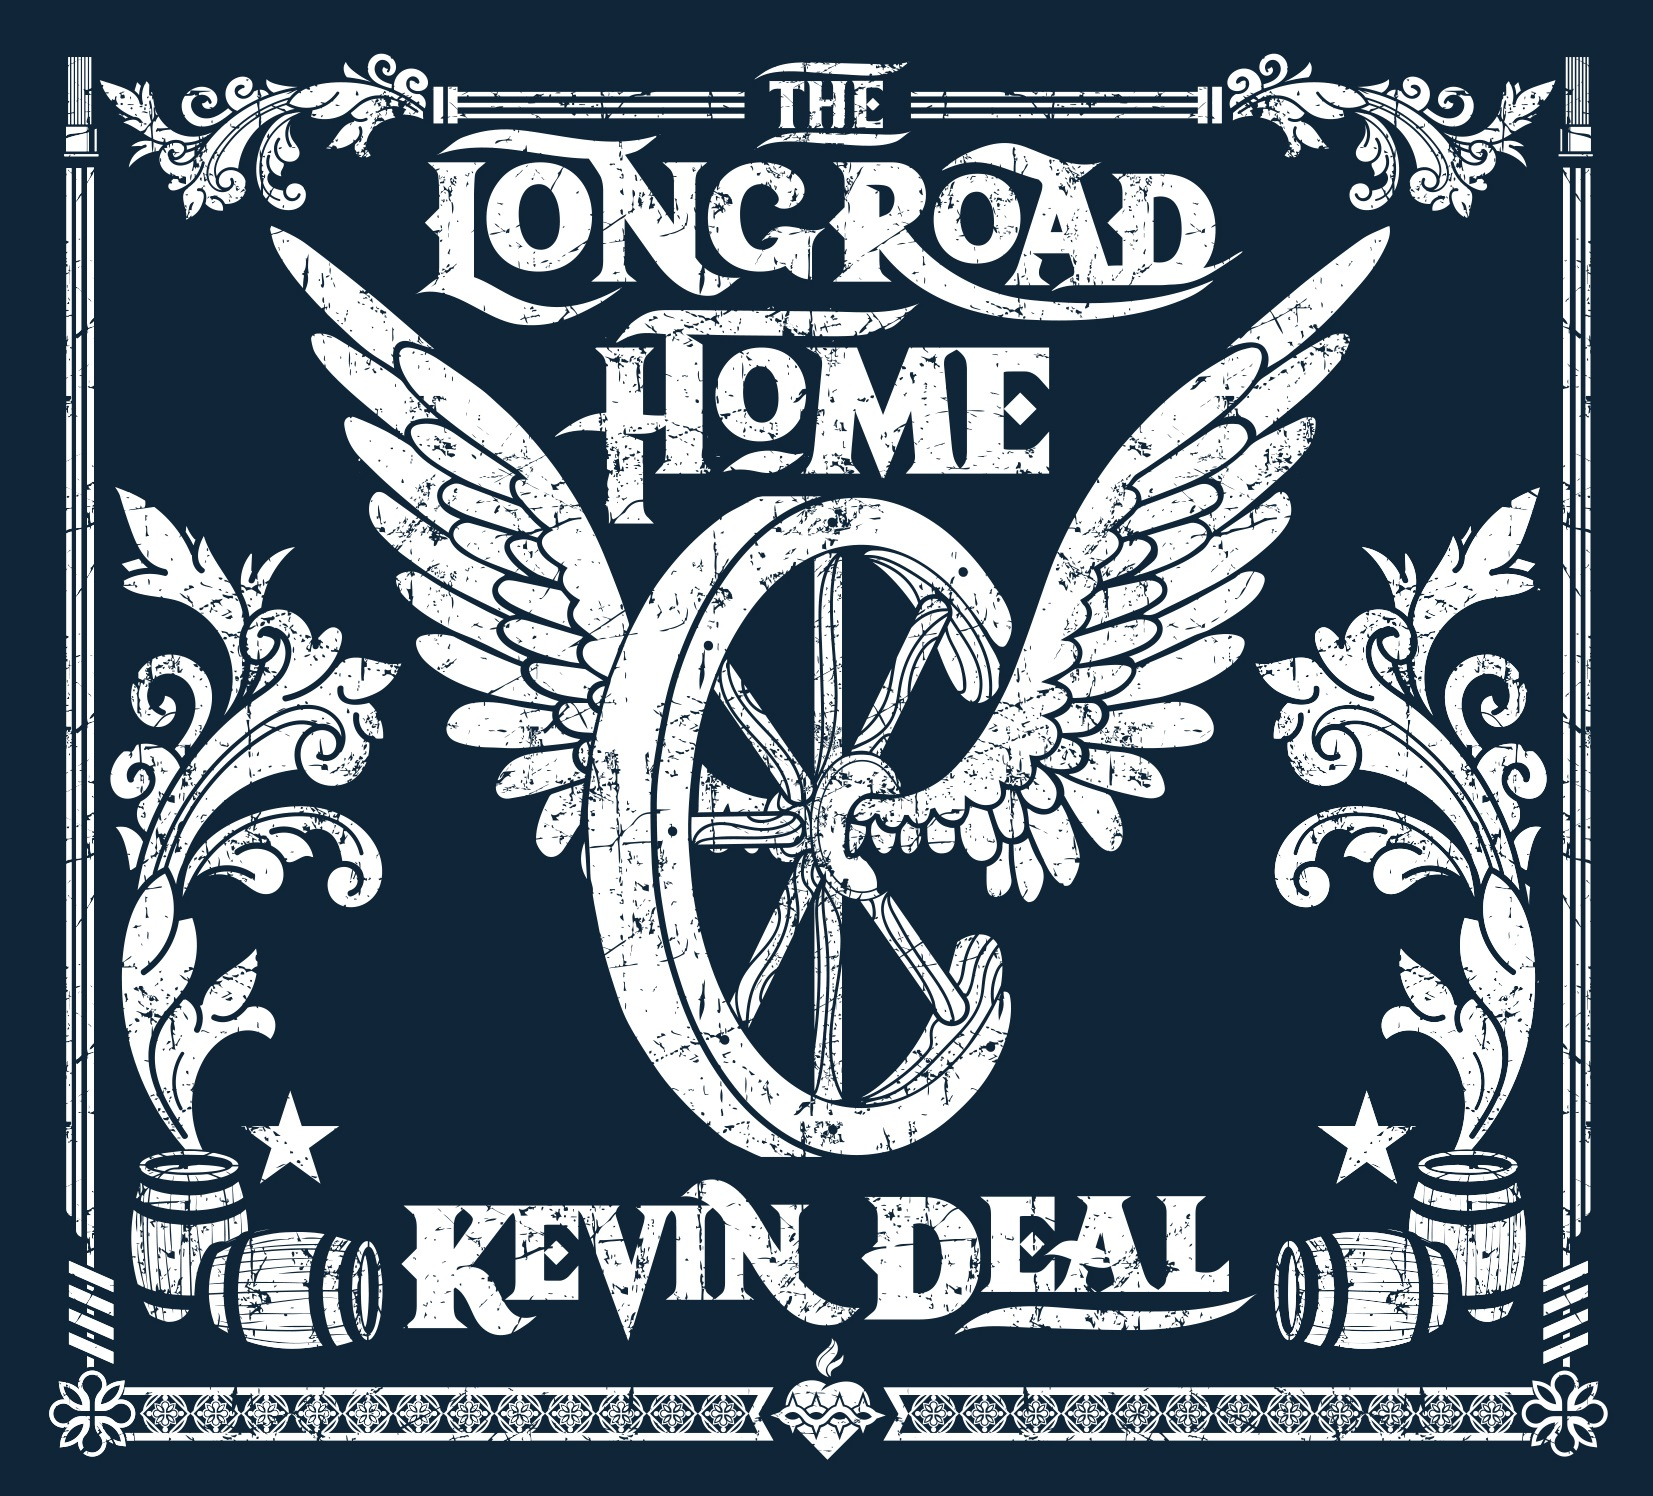 kevin-deal-the-long-road-home